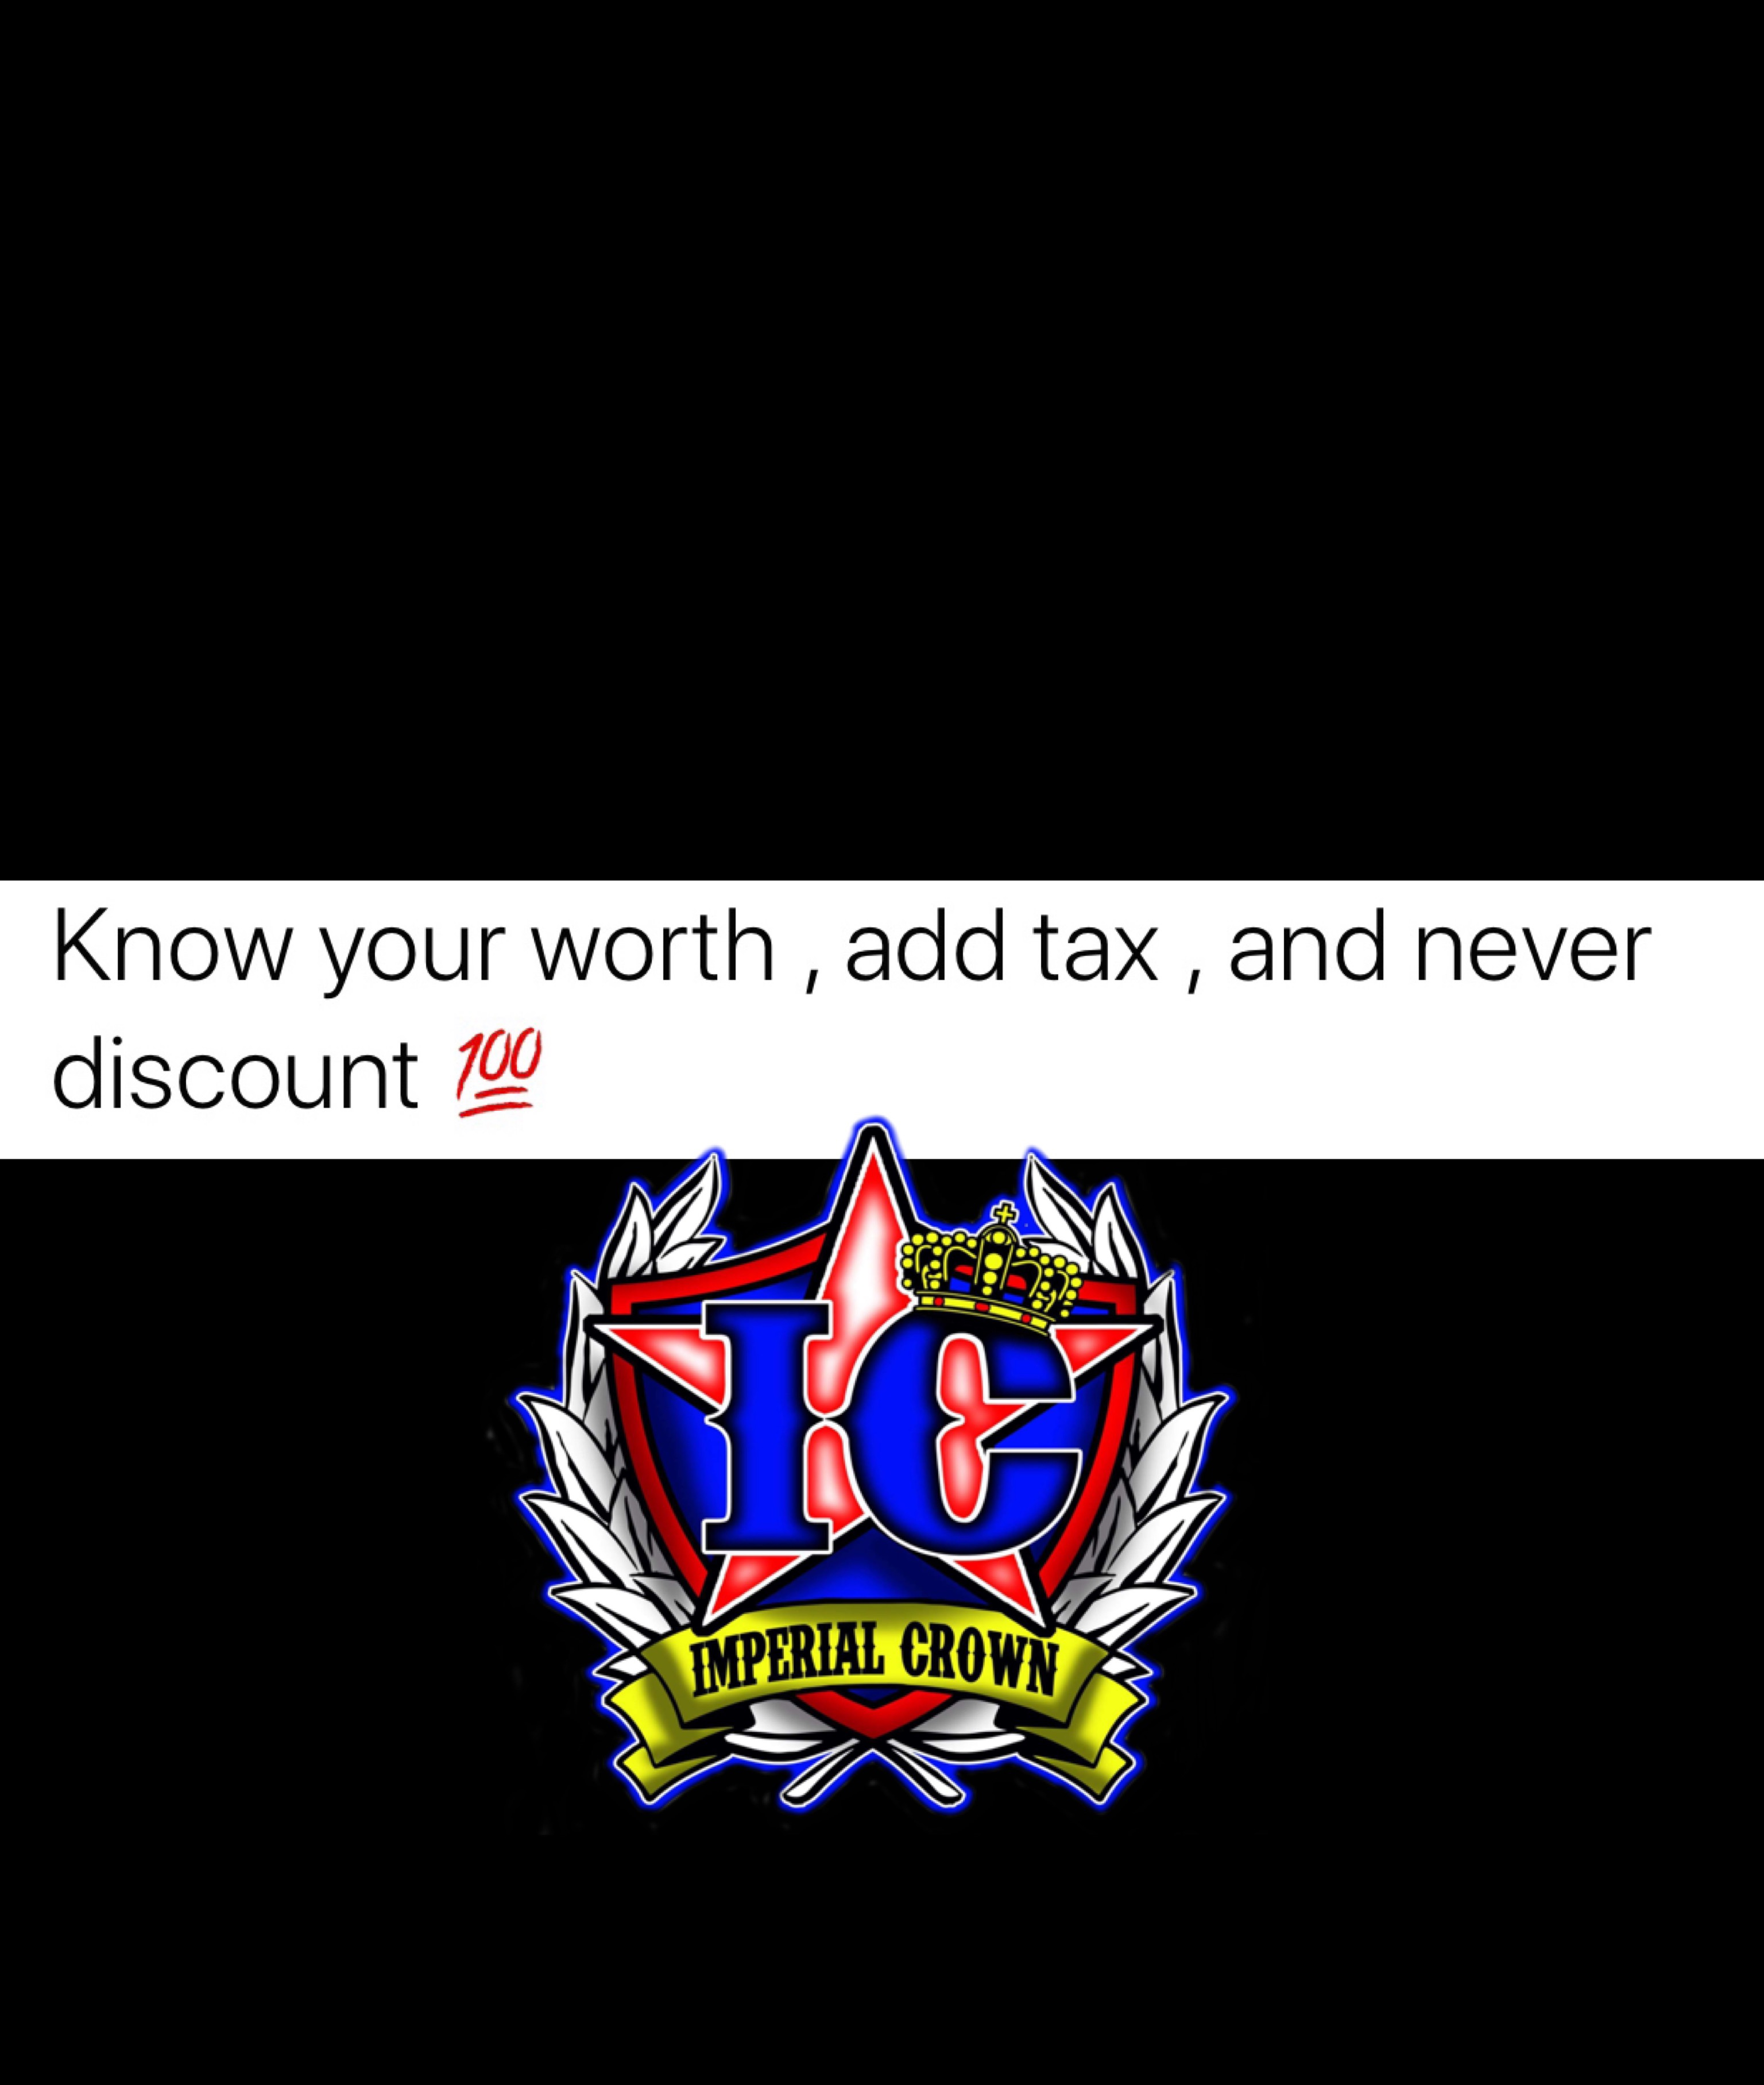 Know your worth add tax and never discount